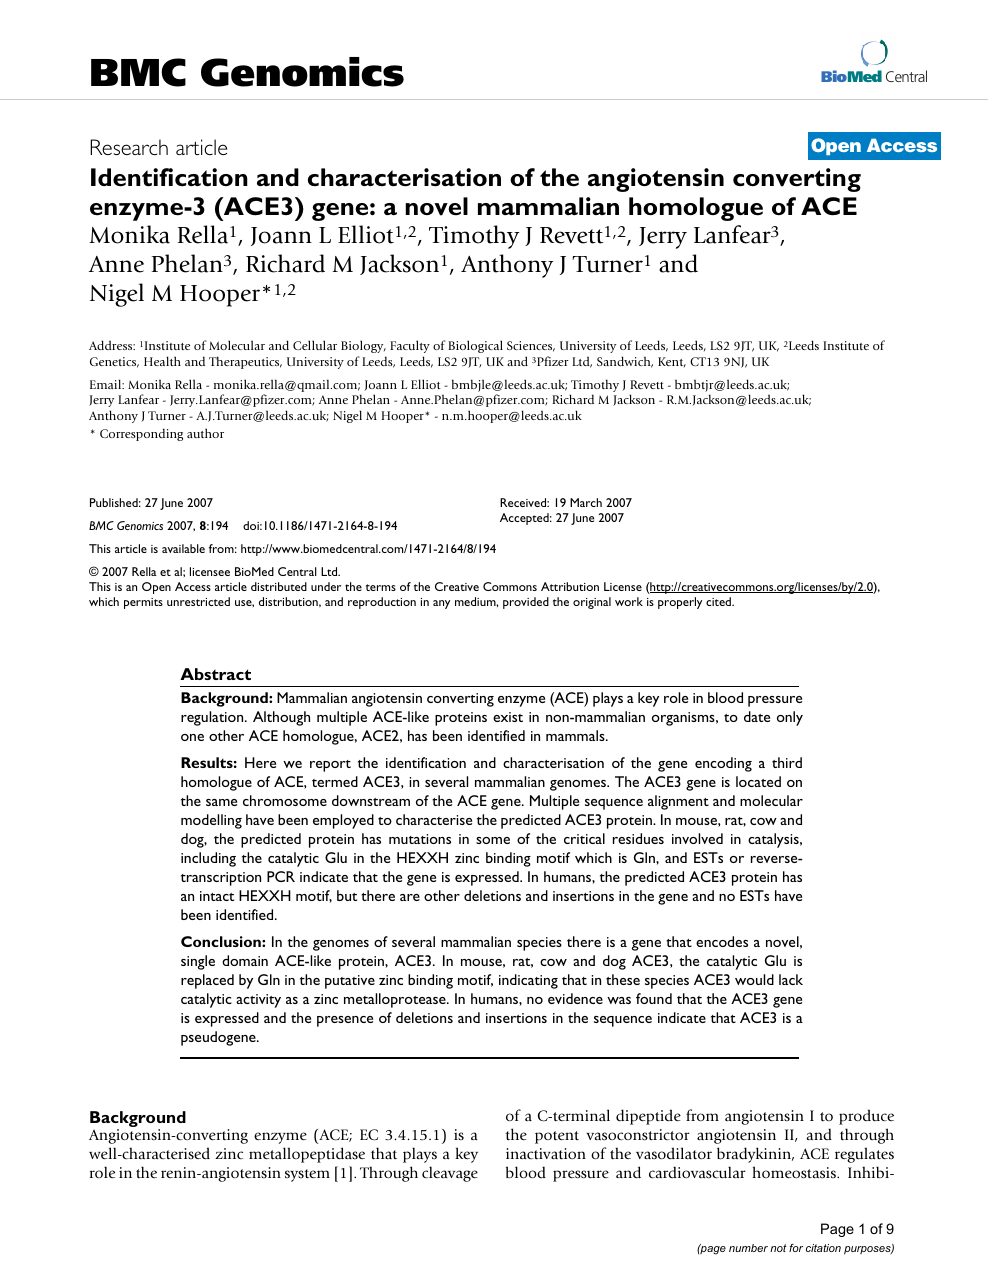 Identification and characterisation of the angiotensin